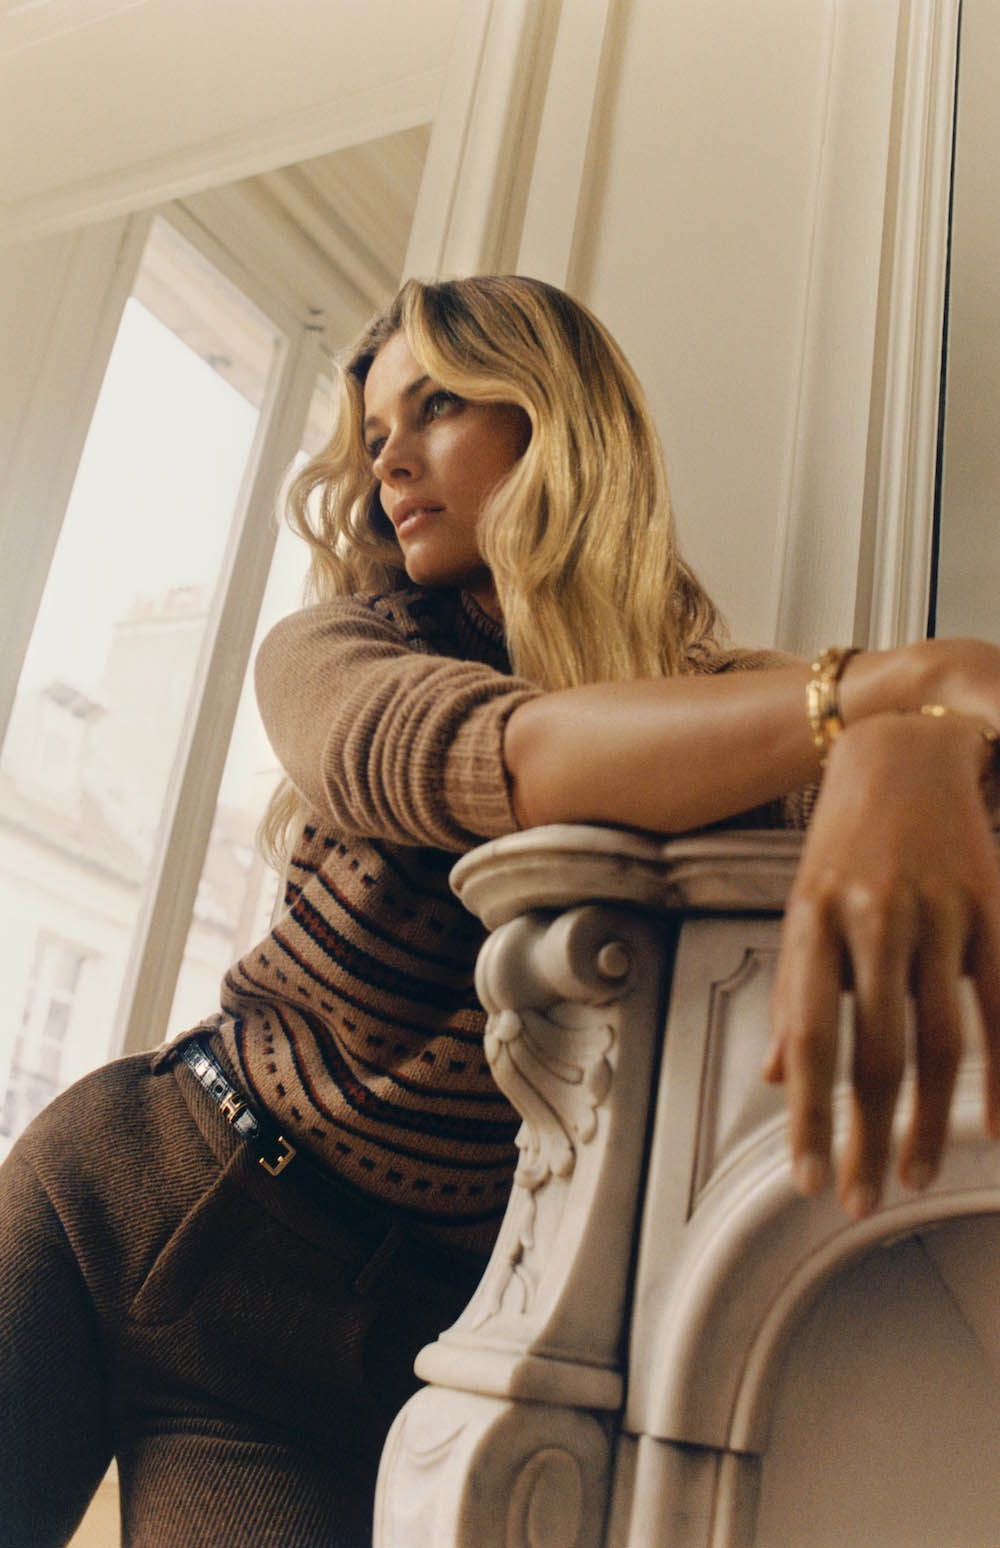 Edita Vilkeviciute by Quentin De Briey for Vogue Paris October 2020